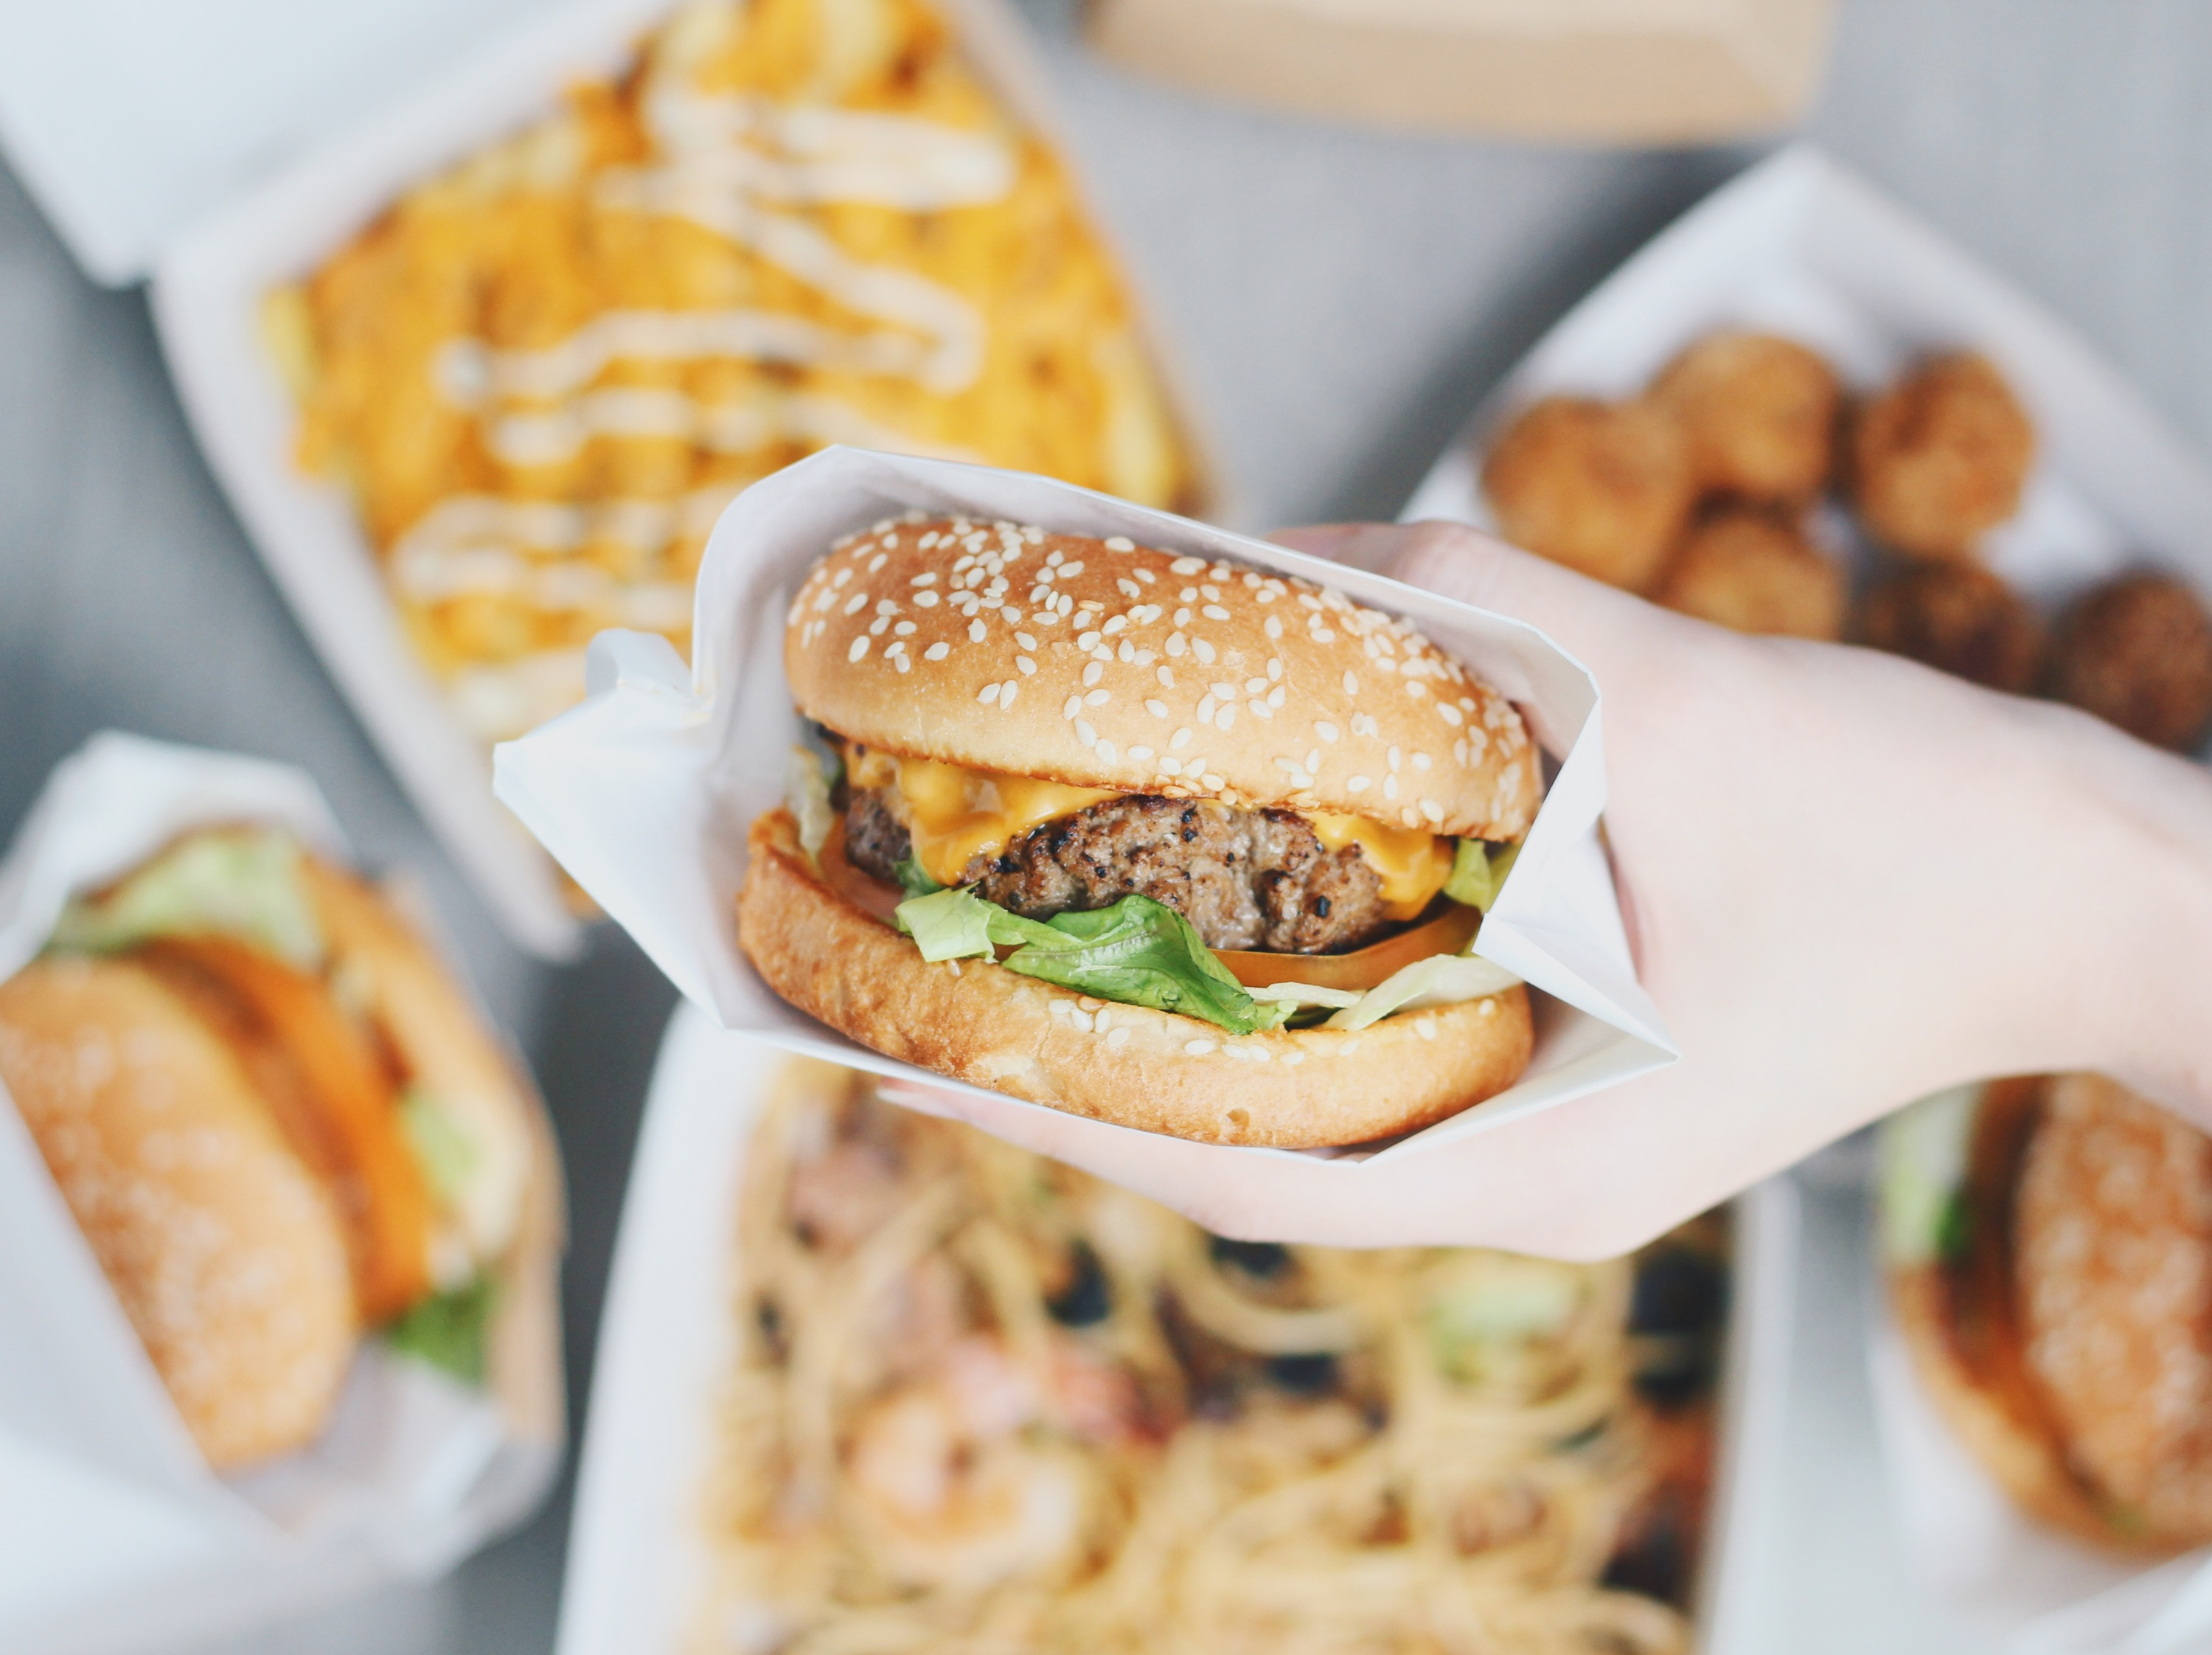 Da Bao Diaries: burgers and pasta from a hawker stall